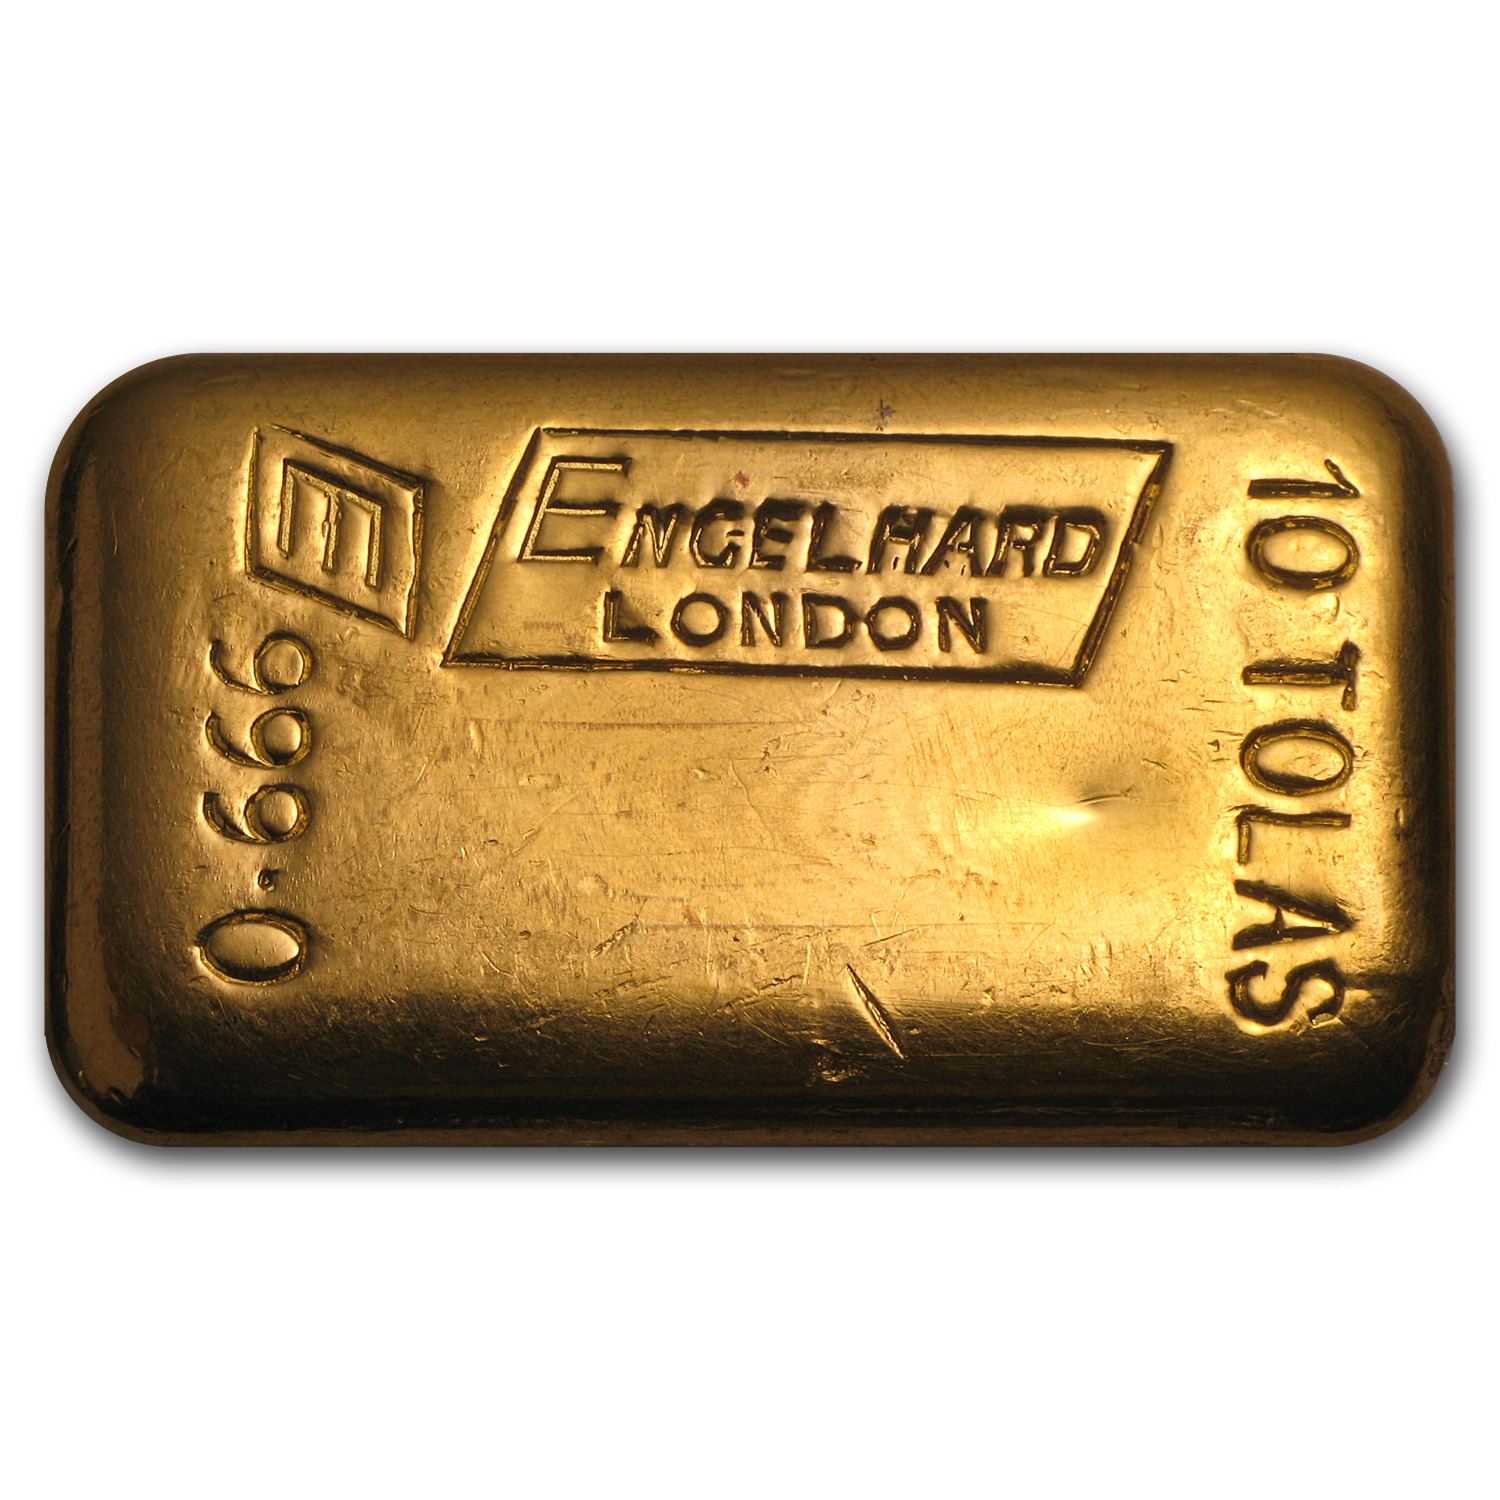 10 Tolas Gold Bar - Engelhard-London (Poured, 3.75 oz)